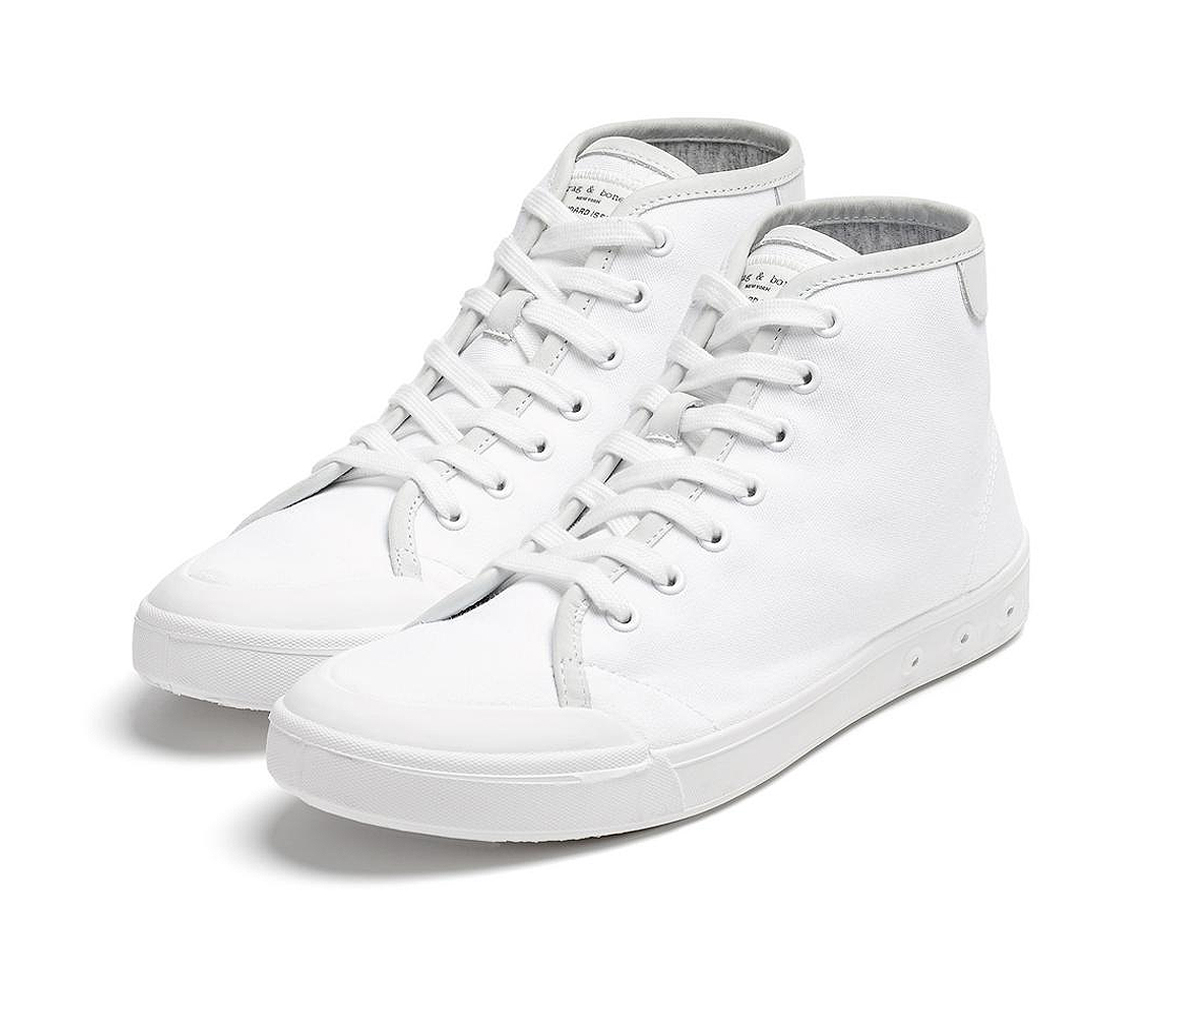 13d45ee7b15 The 15 Best White Sneakers for Men: Summer 2016 Edition: Summer 2016 ...